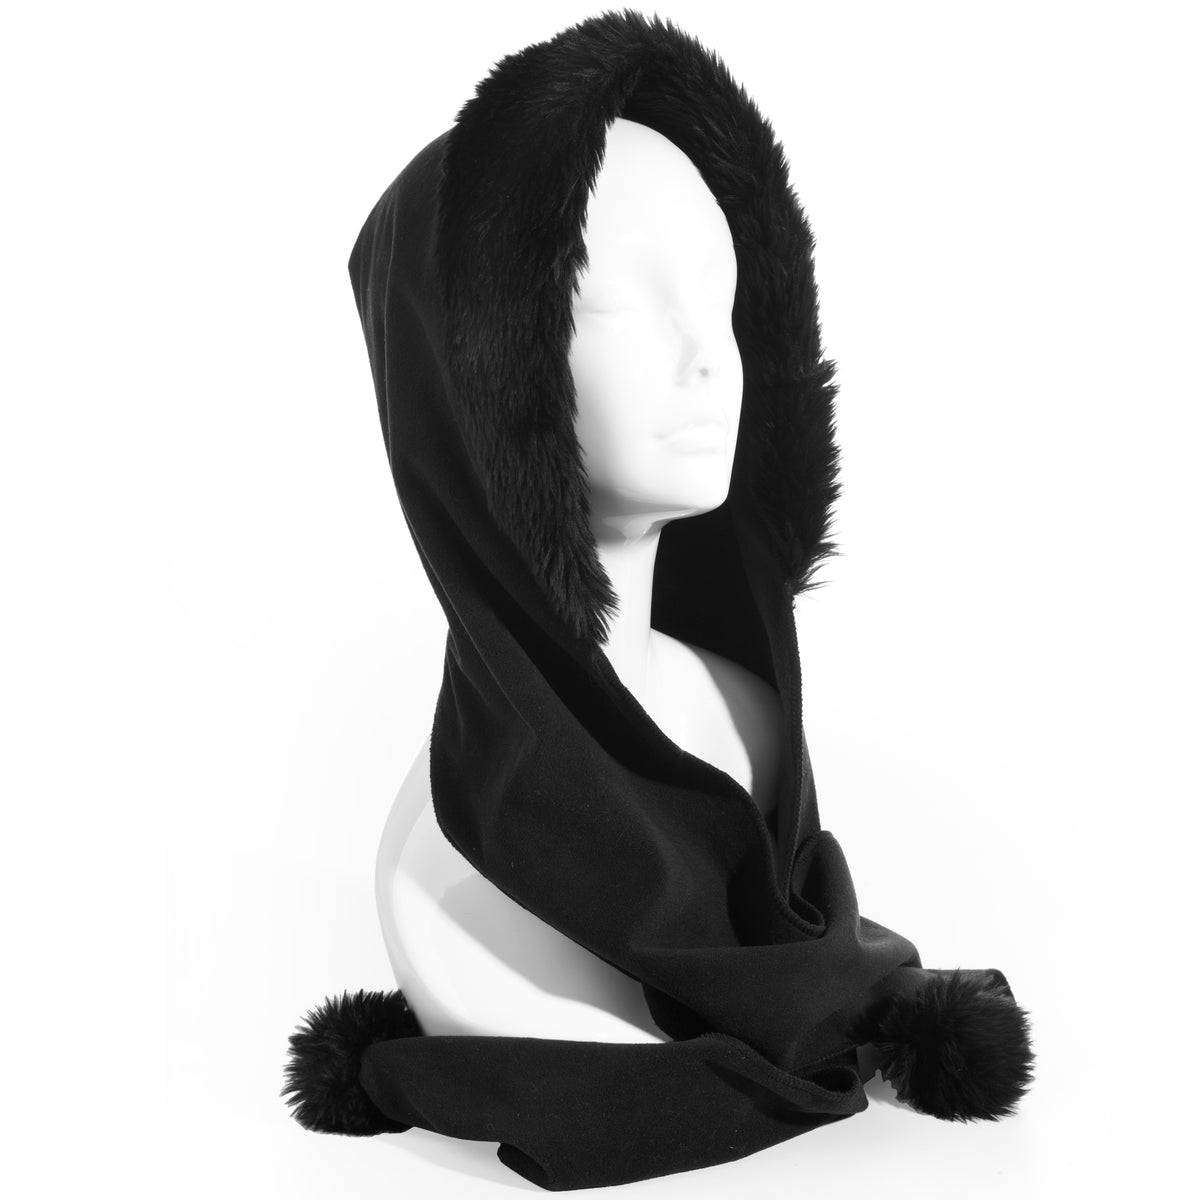 Isotoner Stretch Fleece Hoodwrap for Women